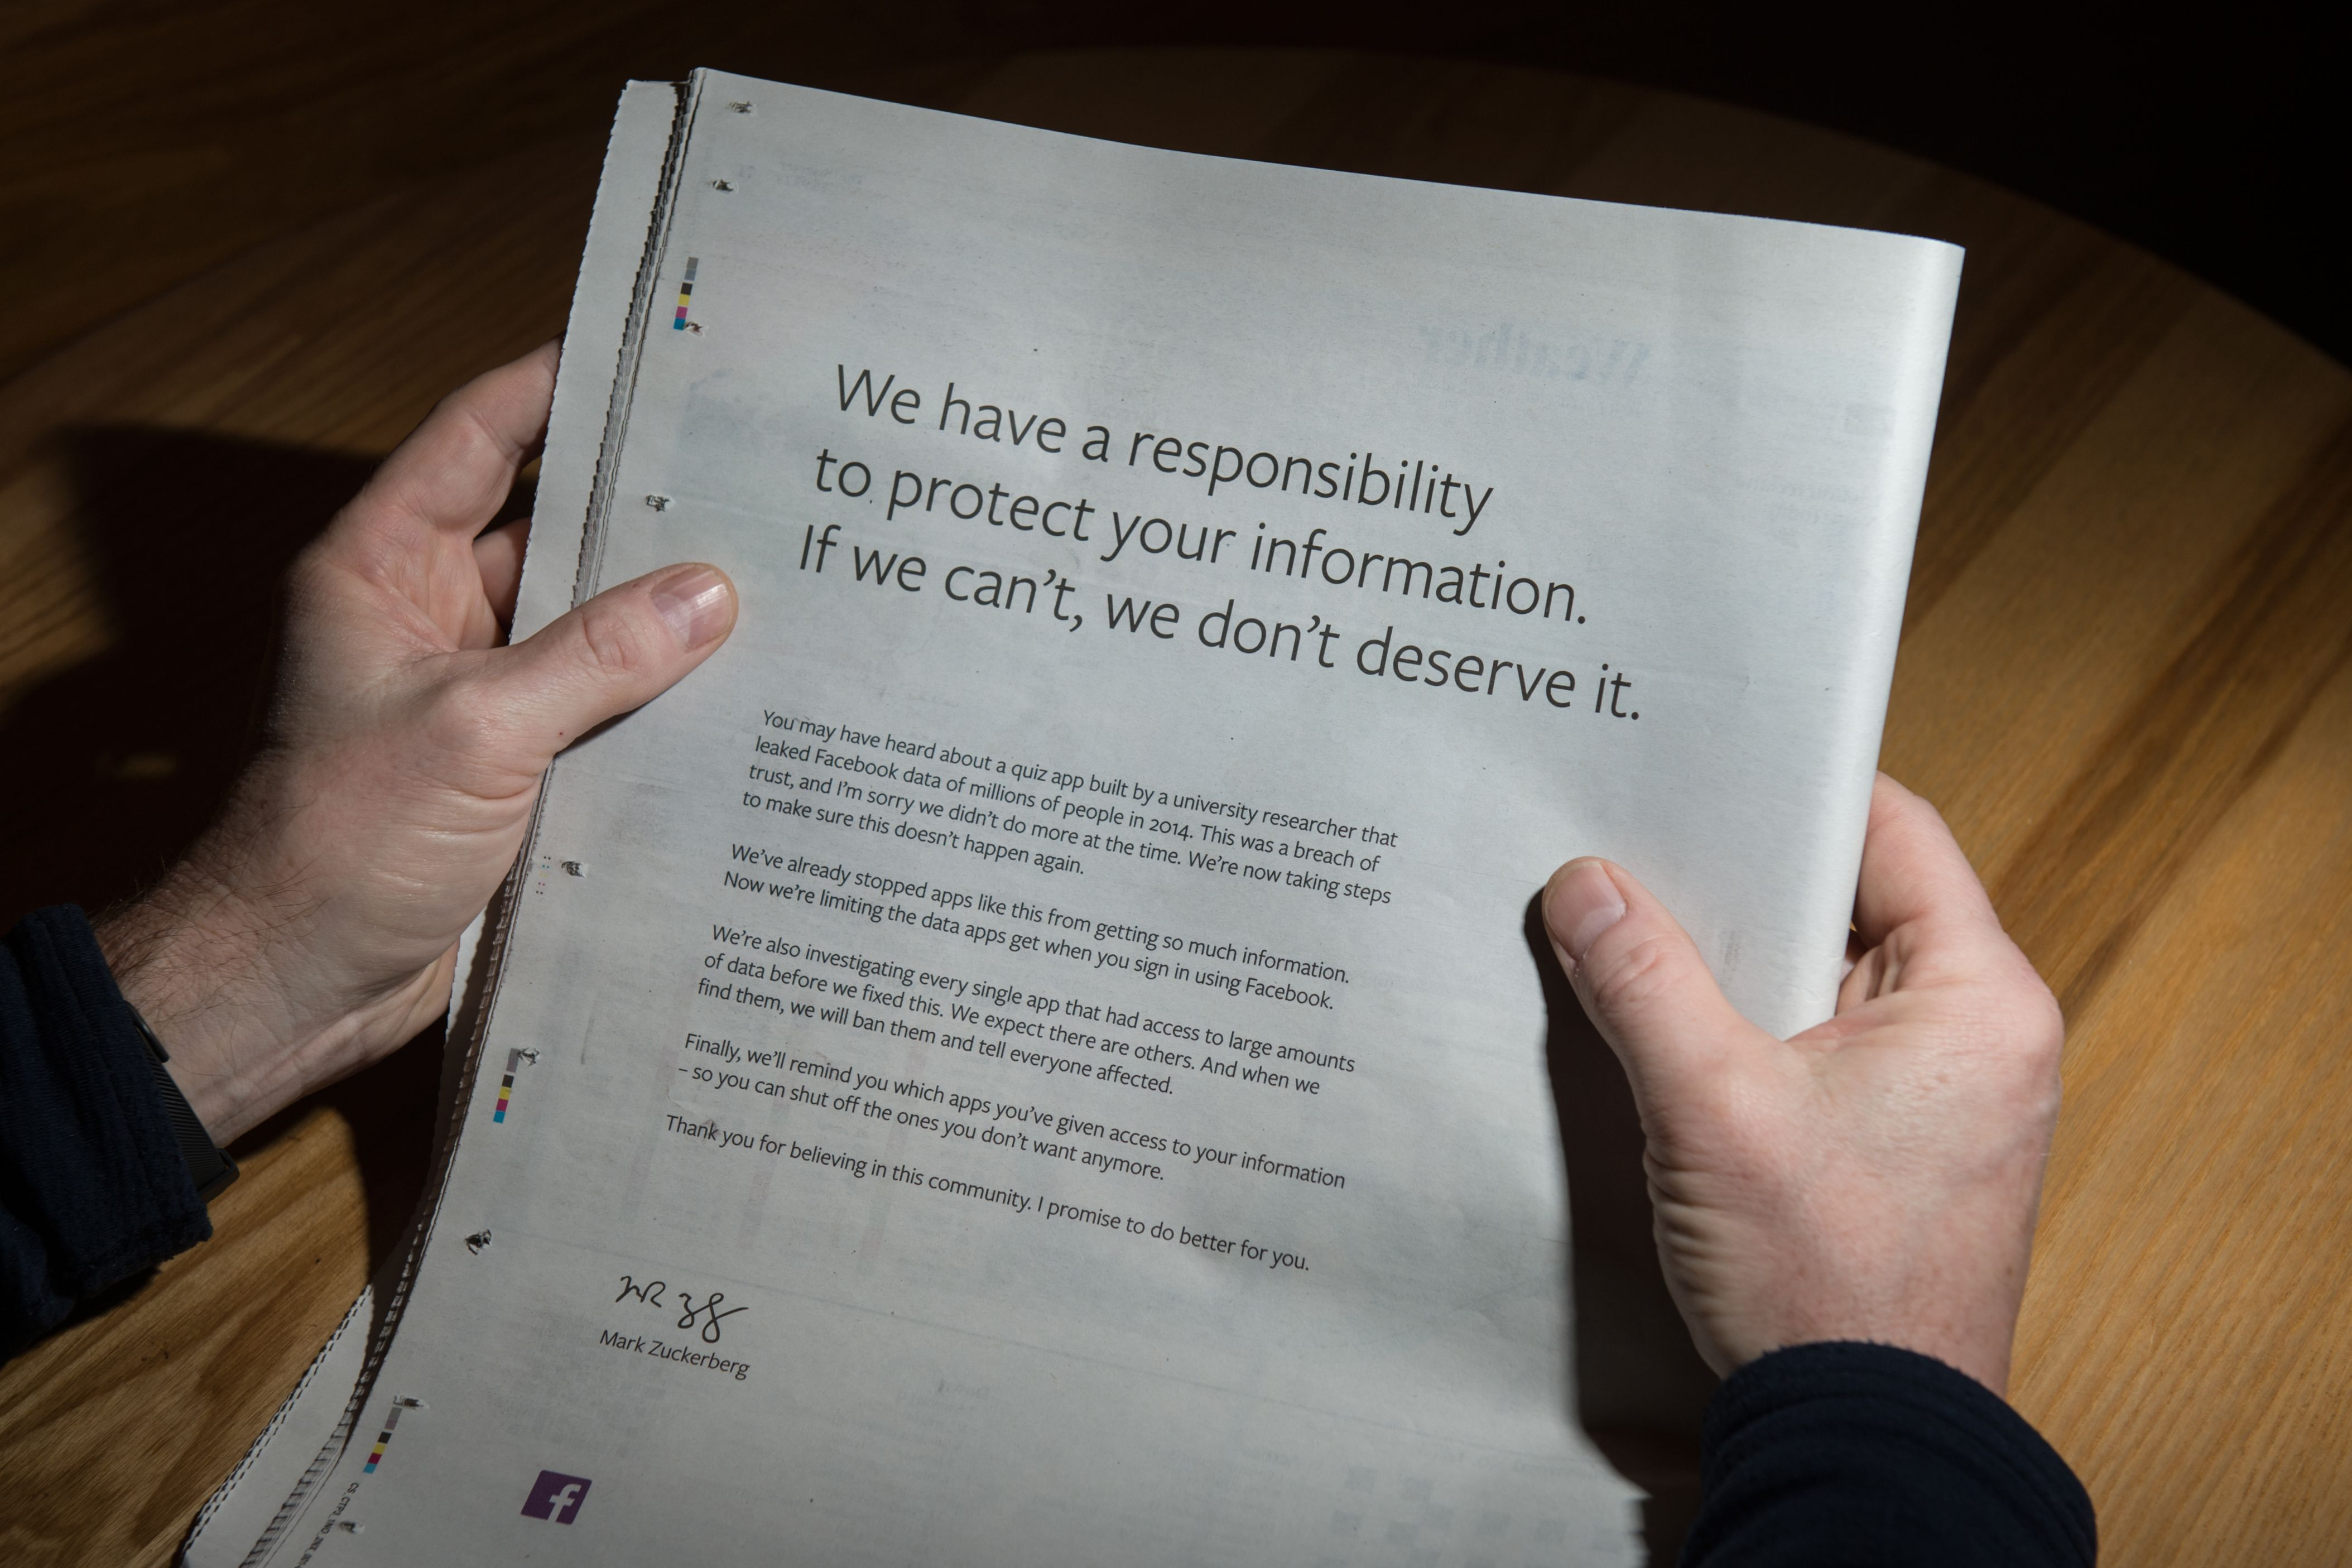 A man reads a full-page advertisment, taken out by Mark Zuckerberg, the chairman and chief executive officer of Facebook to apologise for the large-scale leak of personal data from the social network, on the backpage of a newspaper, in Ripon, England on March 25, 2018. Facebook chief Mark Zuckerberg took out full-page ads in almost all of Britain's national newspapers on March 25, 2018, to apologise for a huge data privacy scandal. / AFP PHOTO / Oli SCARFF